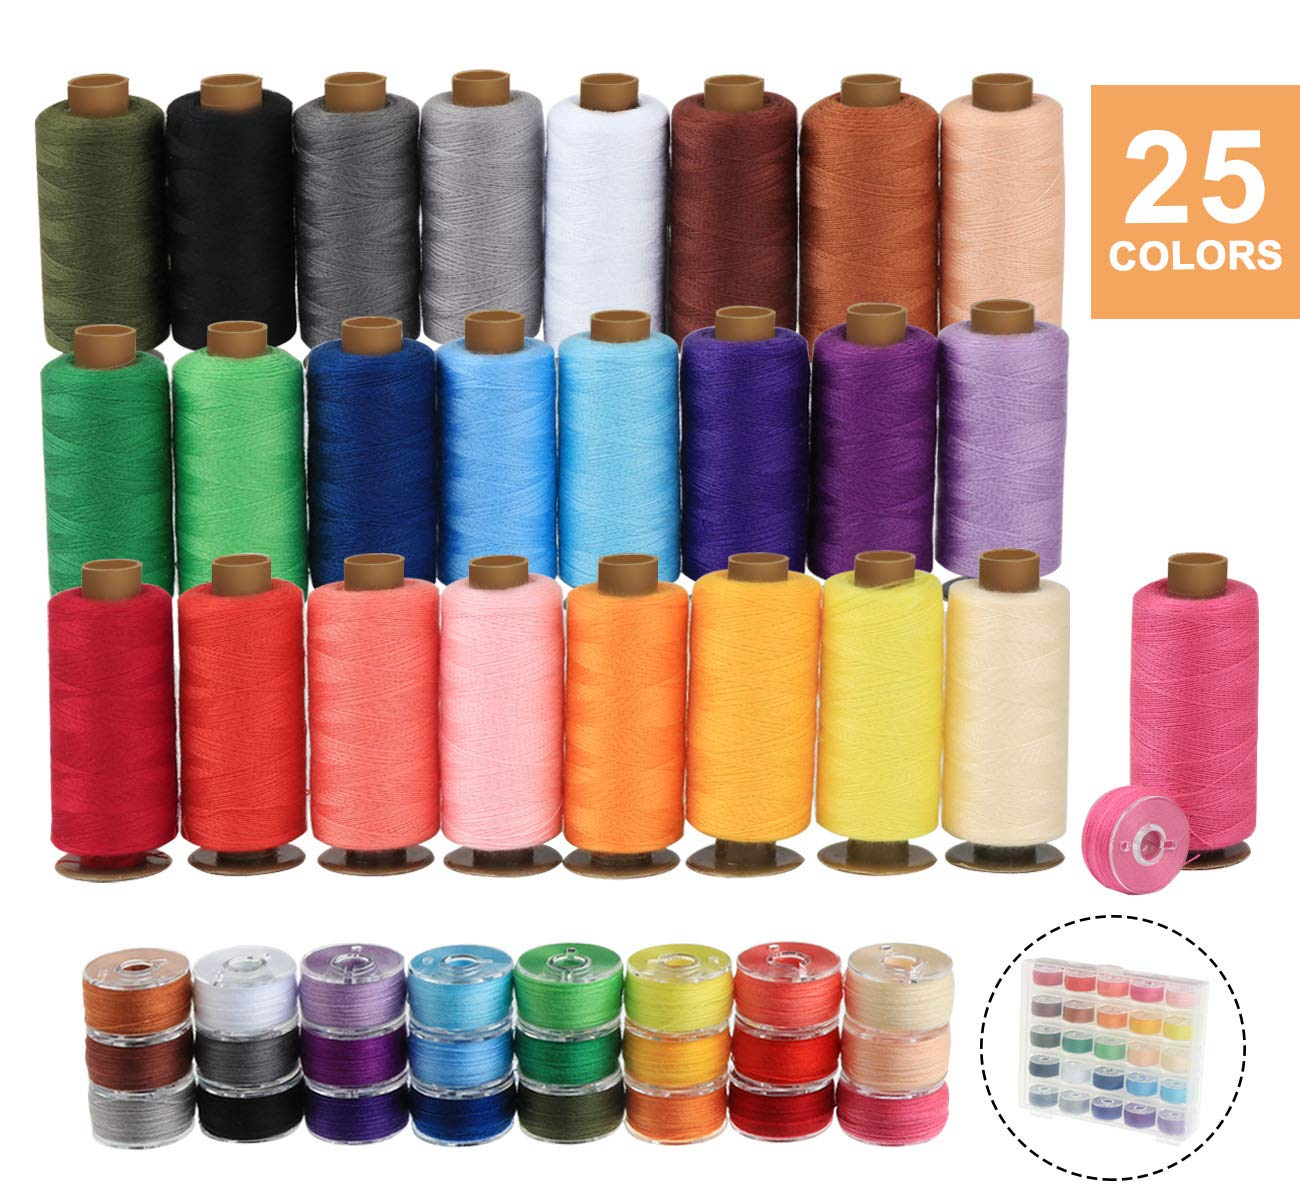 ilauke 50Pcs Bobbins Sewing Threads Kit, 400 Yards per Polyester Thread Spools, Prewound Bobbin with Case for Brother Singer Janome Machine, 25 Colors by ilauke